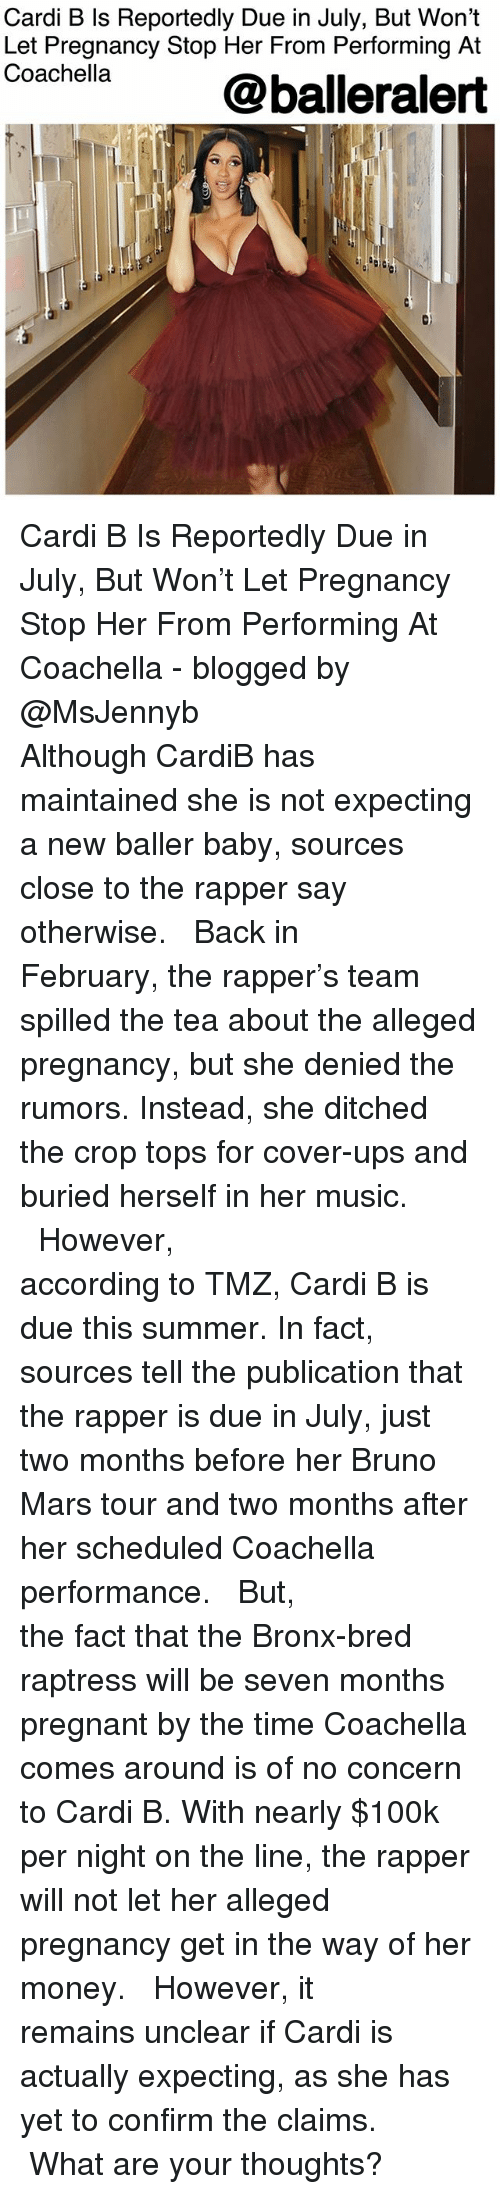 Bruno Mars: Cardi B Is Reportedly Due in July, But Won't  Let Pregnancy Stop Her From Performing At  Coachella  @balleralert  0) Cardi B Is Reportedly Due in July, But Won't Let Pregnancy Stop Her From Performing At Coachella - blogged by @MsJennyb ⠀⠀⠀⠀⠀⠀⠀⠀⠀ ⠀⠀⠀⠀⠀⠀⠀⠀⠀ Although CardiB has maintained she is not expecting a new baller baby, sources close to the rapper say otherwise. ⠀⠀⠀⠀⠀⠀⠀⠀⠀ ⠀⠀⠀⠀⠀⠀⠀⠀⠀ Back in February, the rapper's team spilled the tea about the alleged pregnancy, but she denied the rumors. Instead, she ditched the crop tops for cover-ups and buried herself in her music. ⠀⠀⠀⠀⠀⠀⠀⠀⠀ ⠀⠀⠀⠀⠀⠀⠀⠀⠀ However, according to TMZ, Cardi B is due this summer. In fact, sources tell the publication that the rapper is due in July, just two months before her Bruno Mars tour and two months after her scheduled Coachella performance. ⠀⠀⠀⠀⠀⠀⠀⠀⠀ ⠀⠀⠀⠀⠀⠀⠀⠀⠀ But, the fact that the Bronx-bred raptress will be seven months pregnant by the time Coachella comes around is of no concern to Cardi B. With nearly $100k per night on the line, the rapper will not let her alleged pregnancy get in the way of her money. ⠀⠀⠀⠀⠀⠀⠀⠀⠀ ⠀⠀⠀⠀⠀⠀⠀⠀⠀ However, it remains unclear if Cardi is actually expecting, as she has yet to confirm the claims. ⠀⠀⠀⠀⠀⠀⠀⠀⠀ ⠀⠀⠀⠀⠀⠀⠀⠀⠀ What are your thoughts?